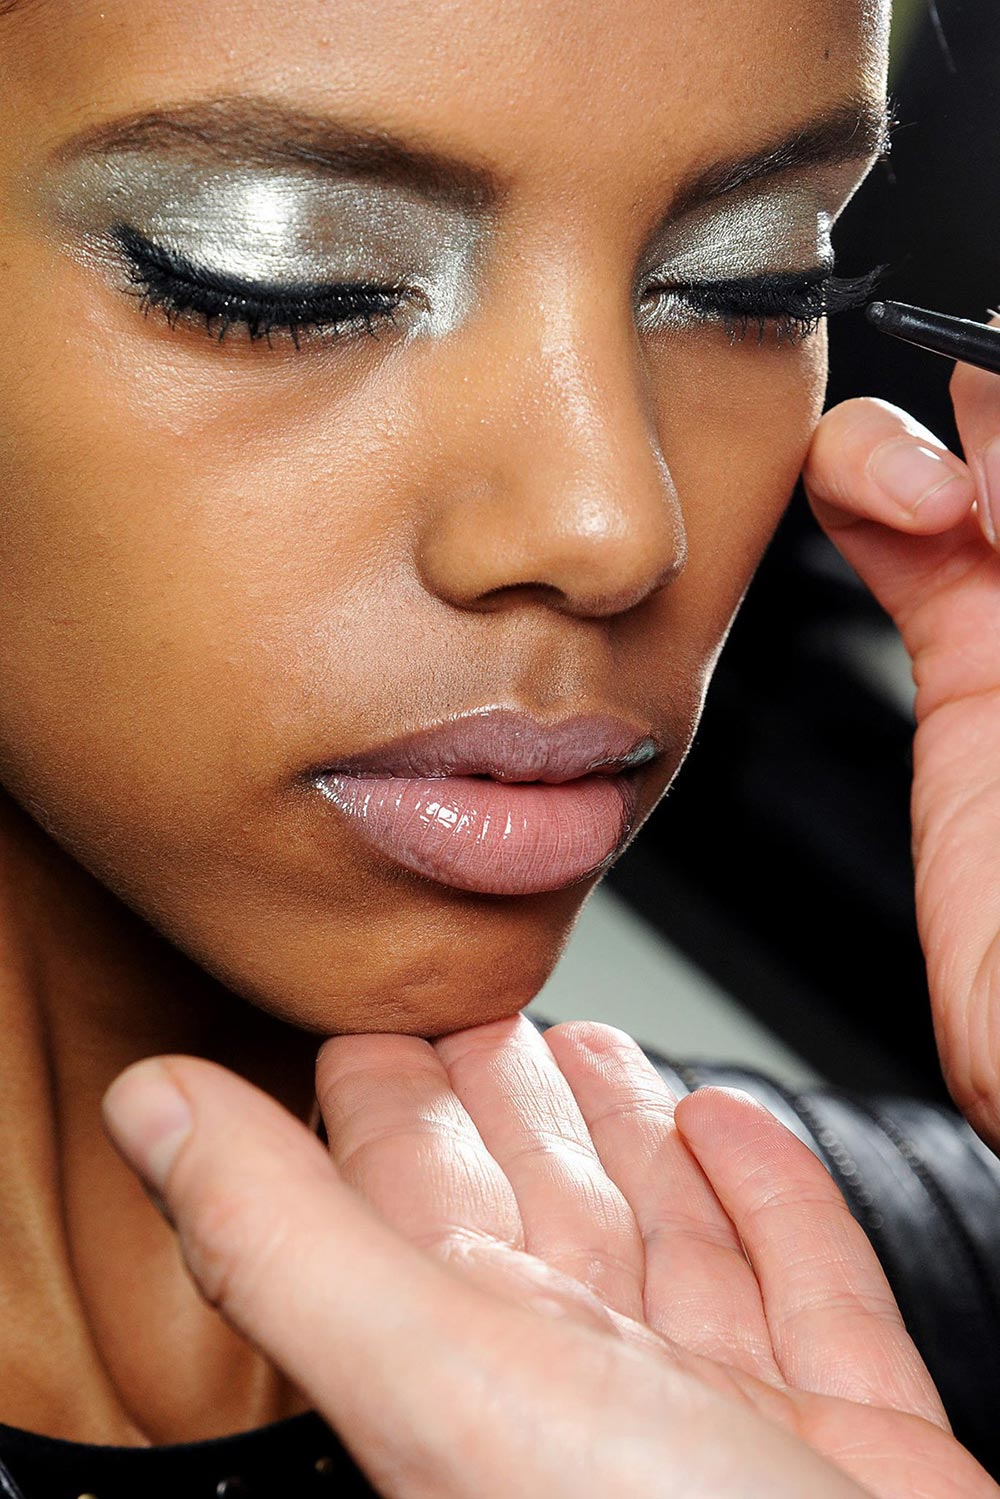 Backstage makeup at Chanel Spring/Summer 2013